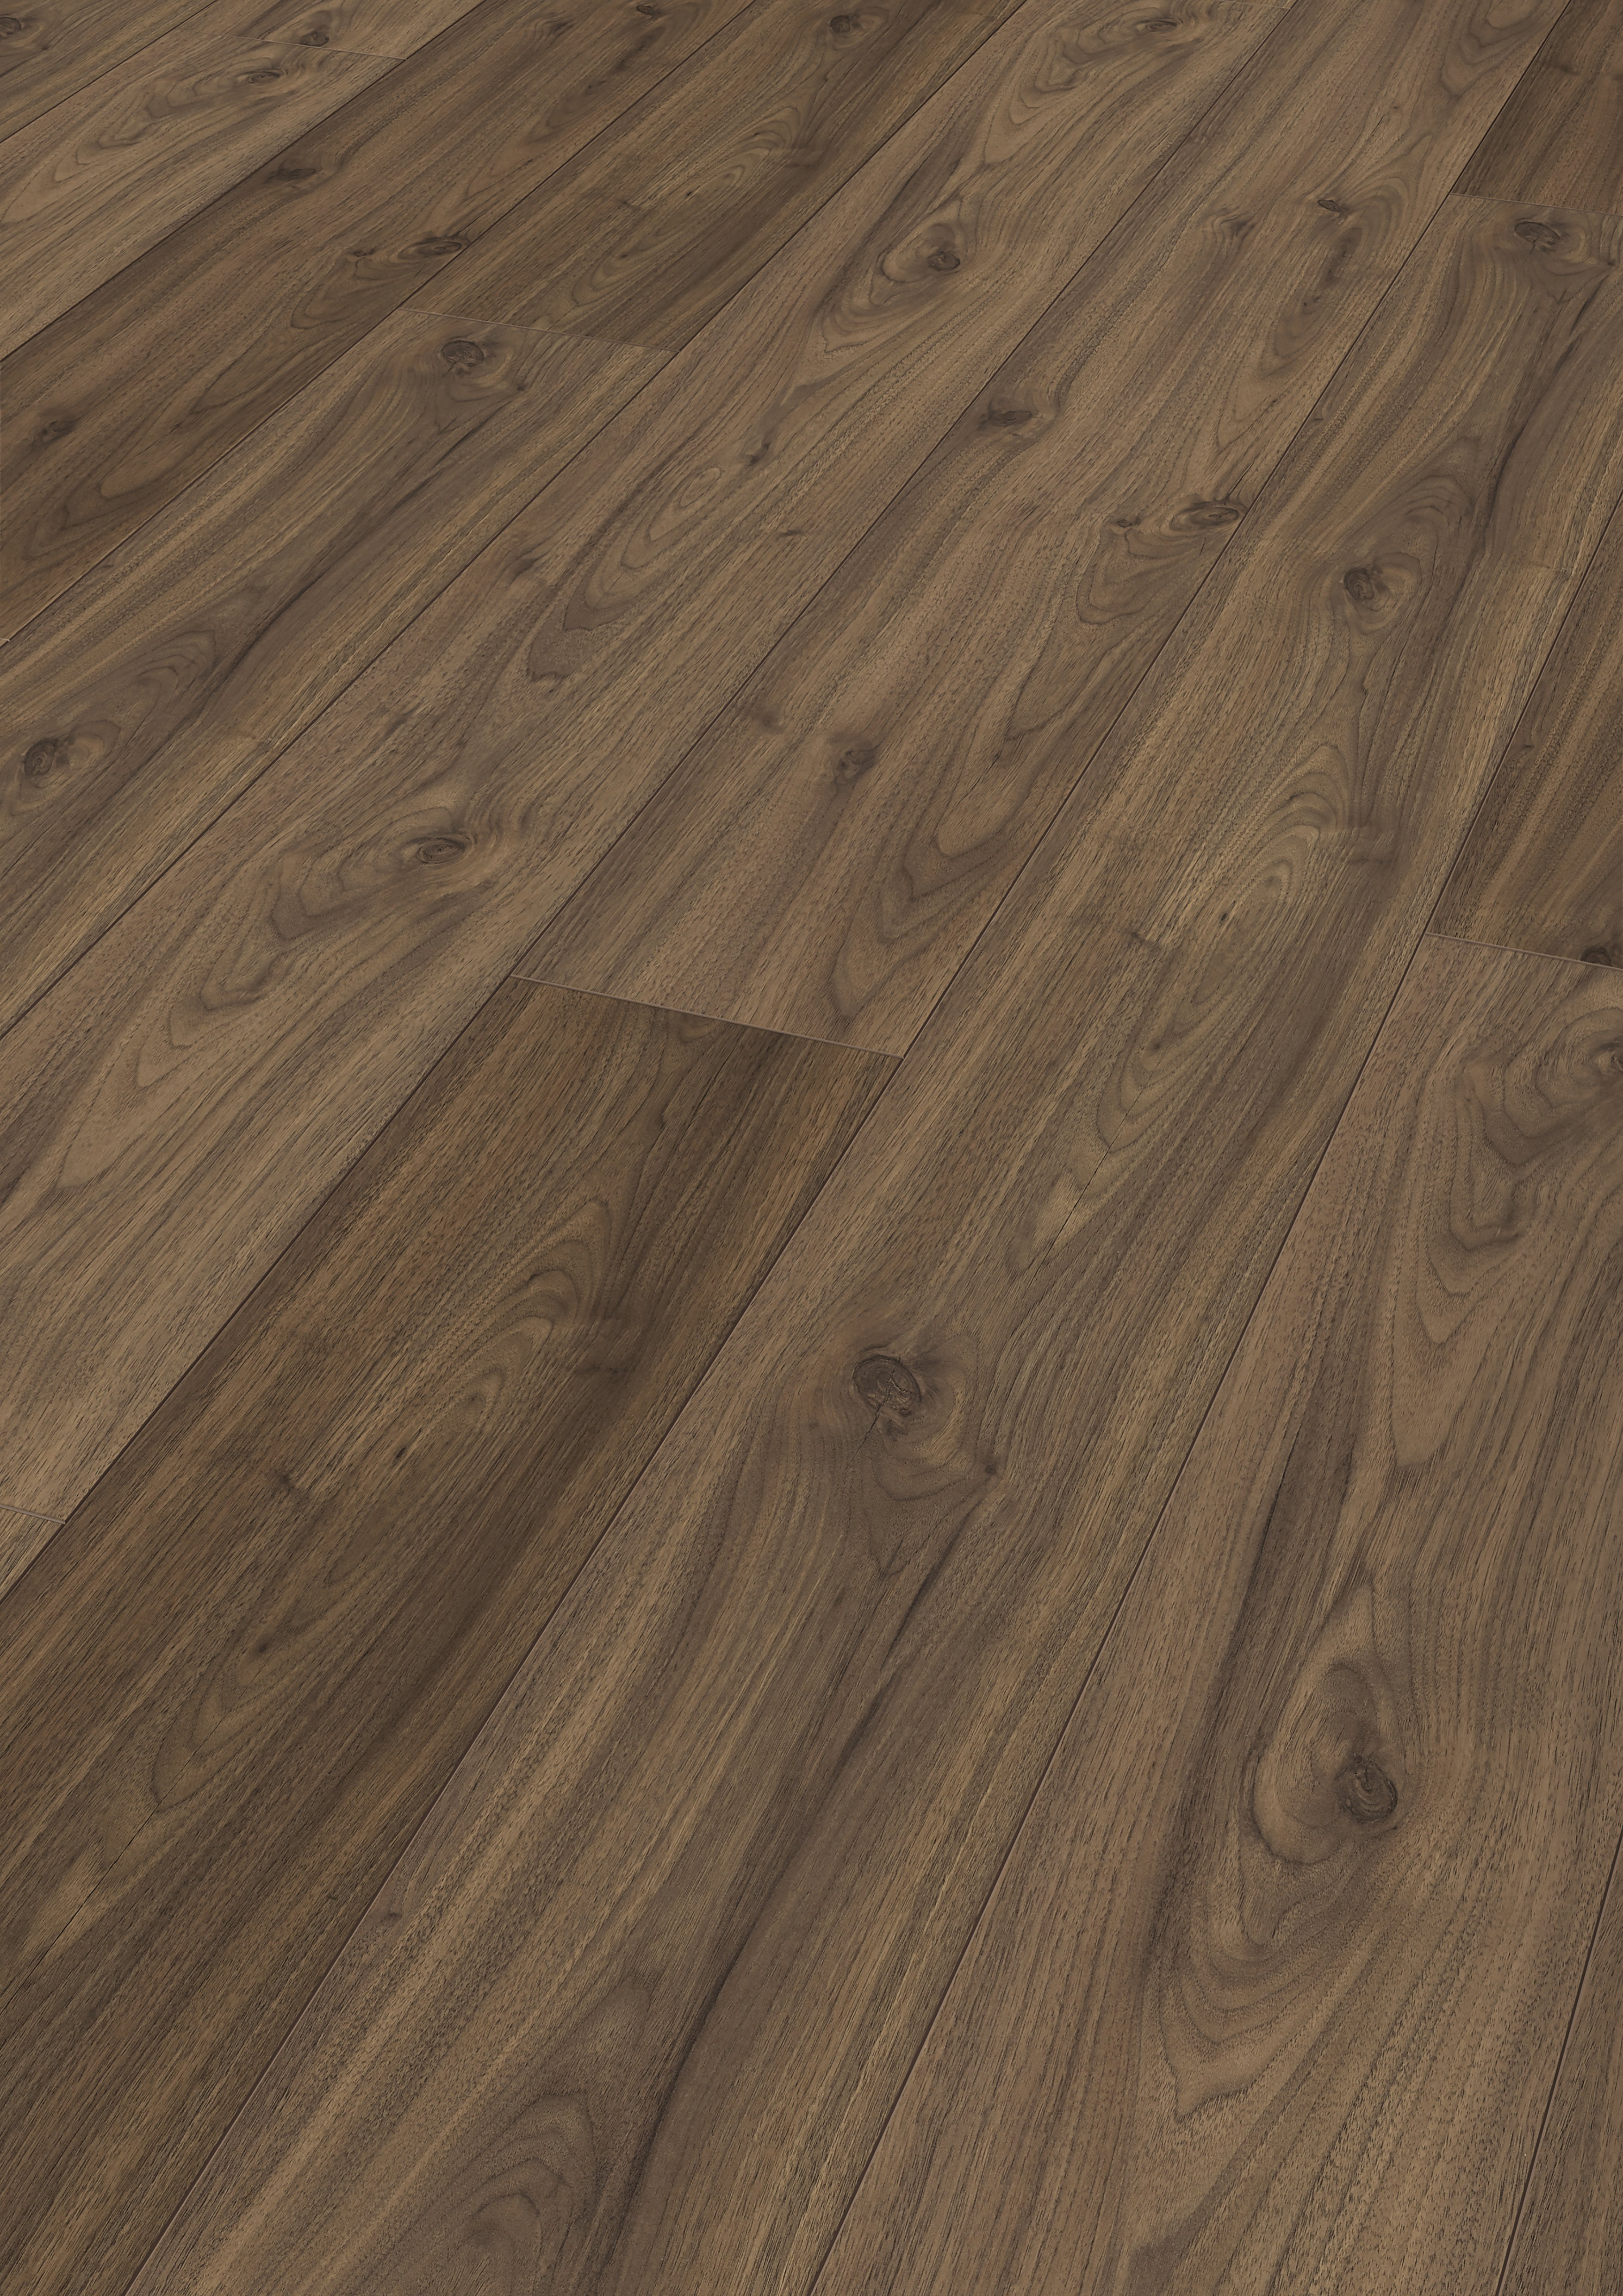 Amore Walnut L6389 | Raw Wood Pore Structure | Wood Effect